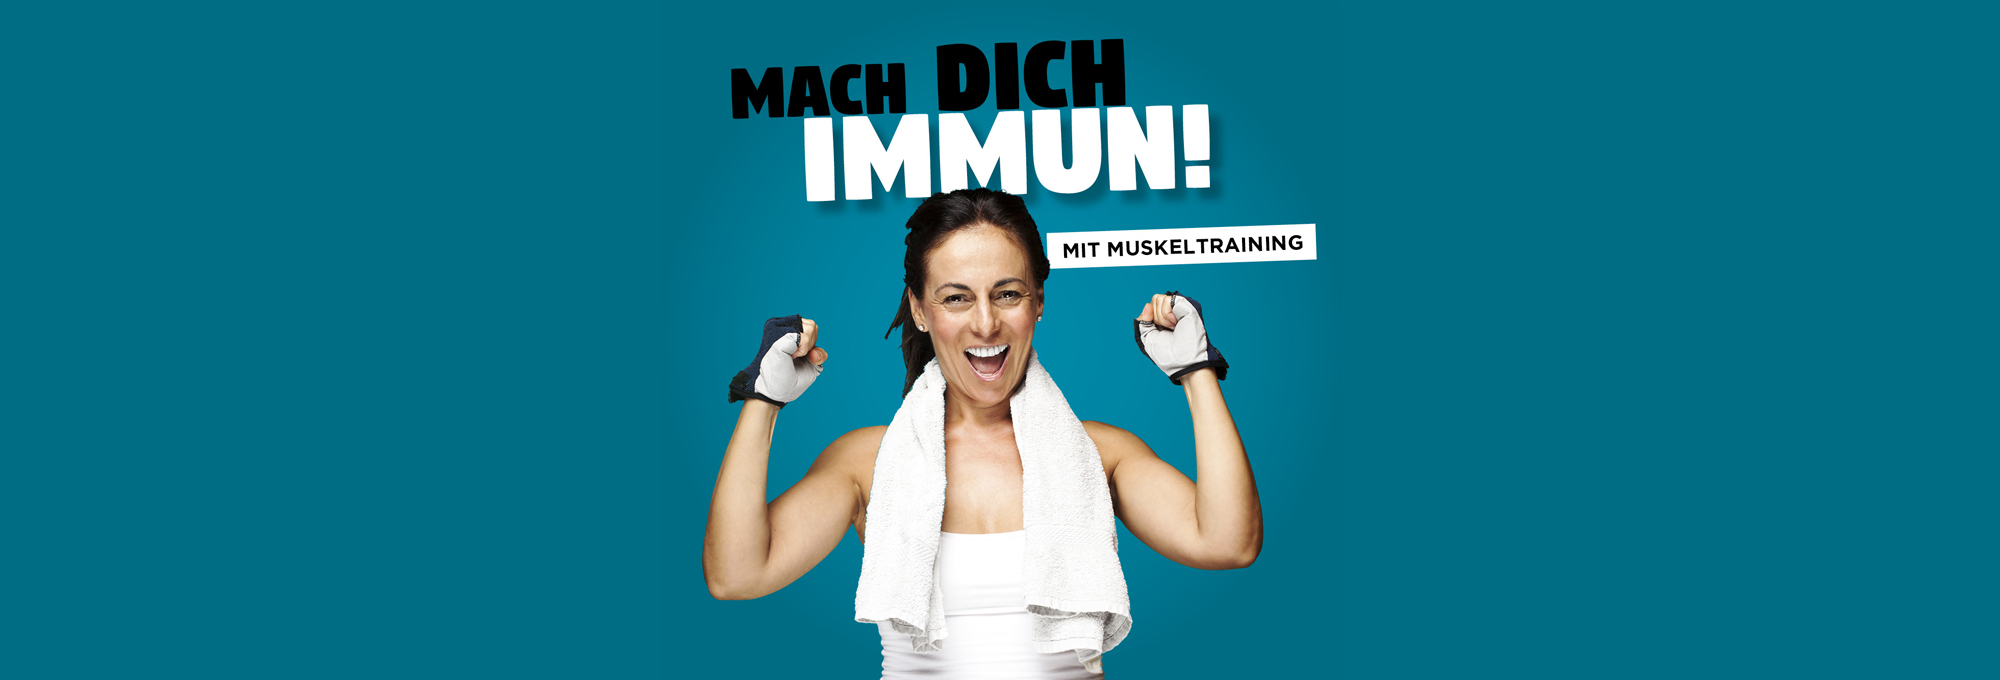 Immun-Macher